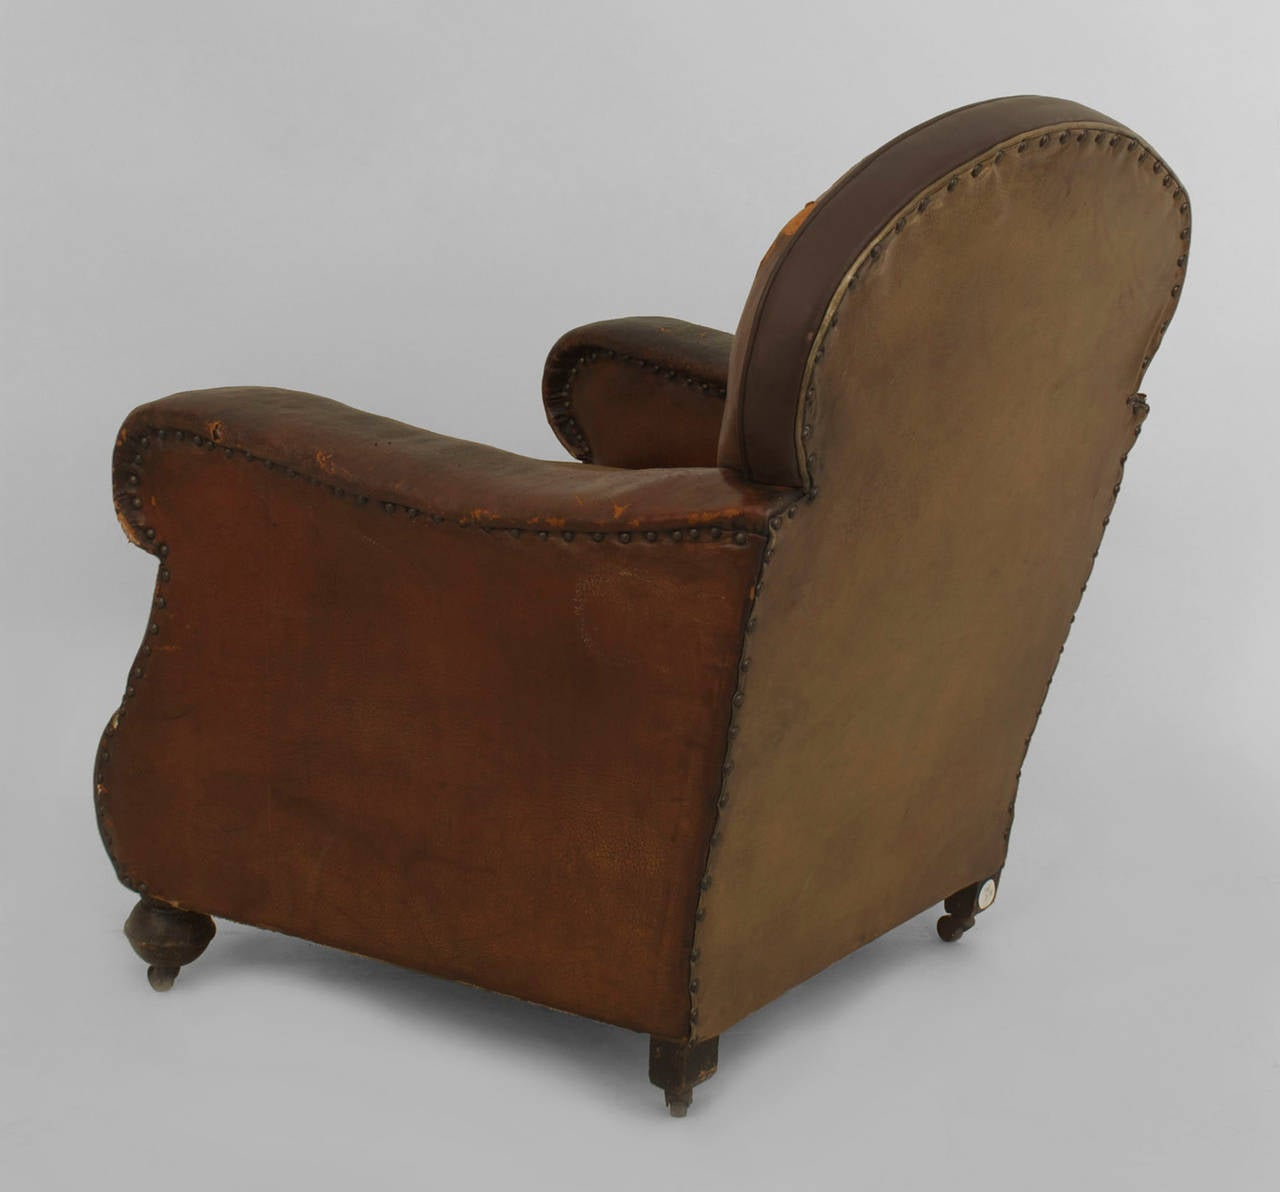 oversized leather chair kids barber pair of 19th century english brown club